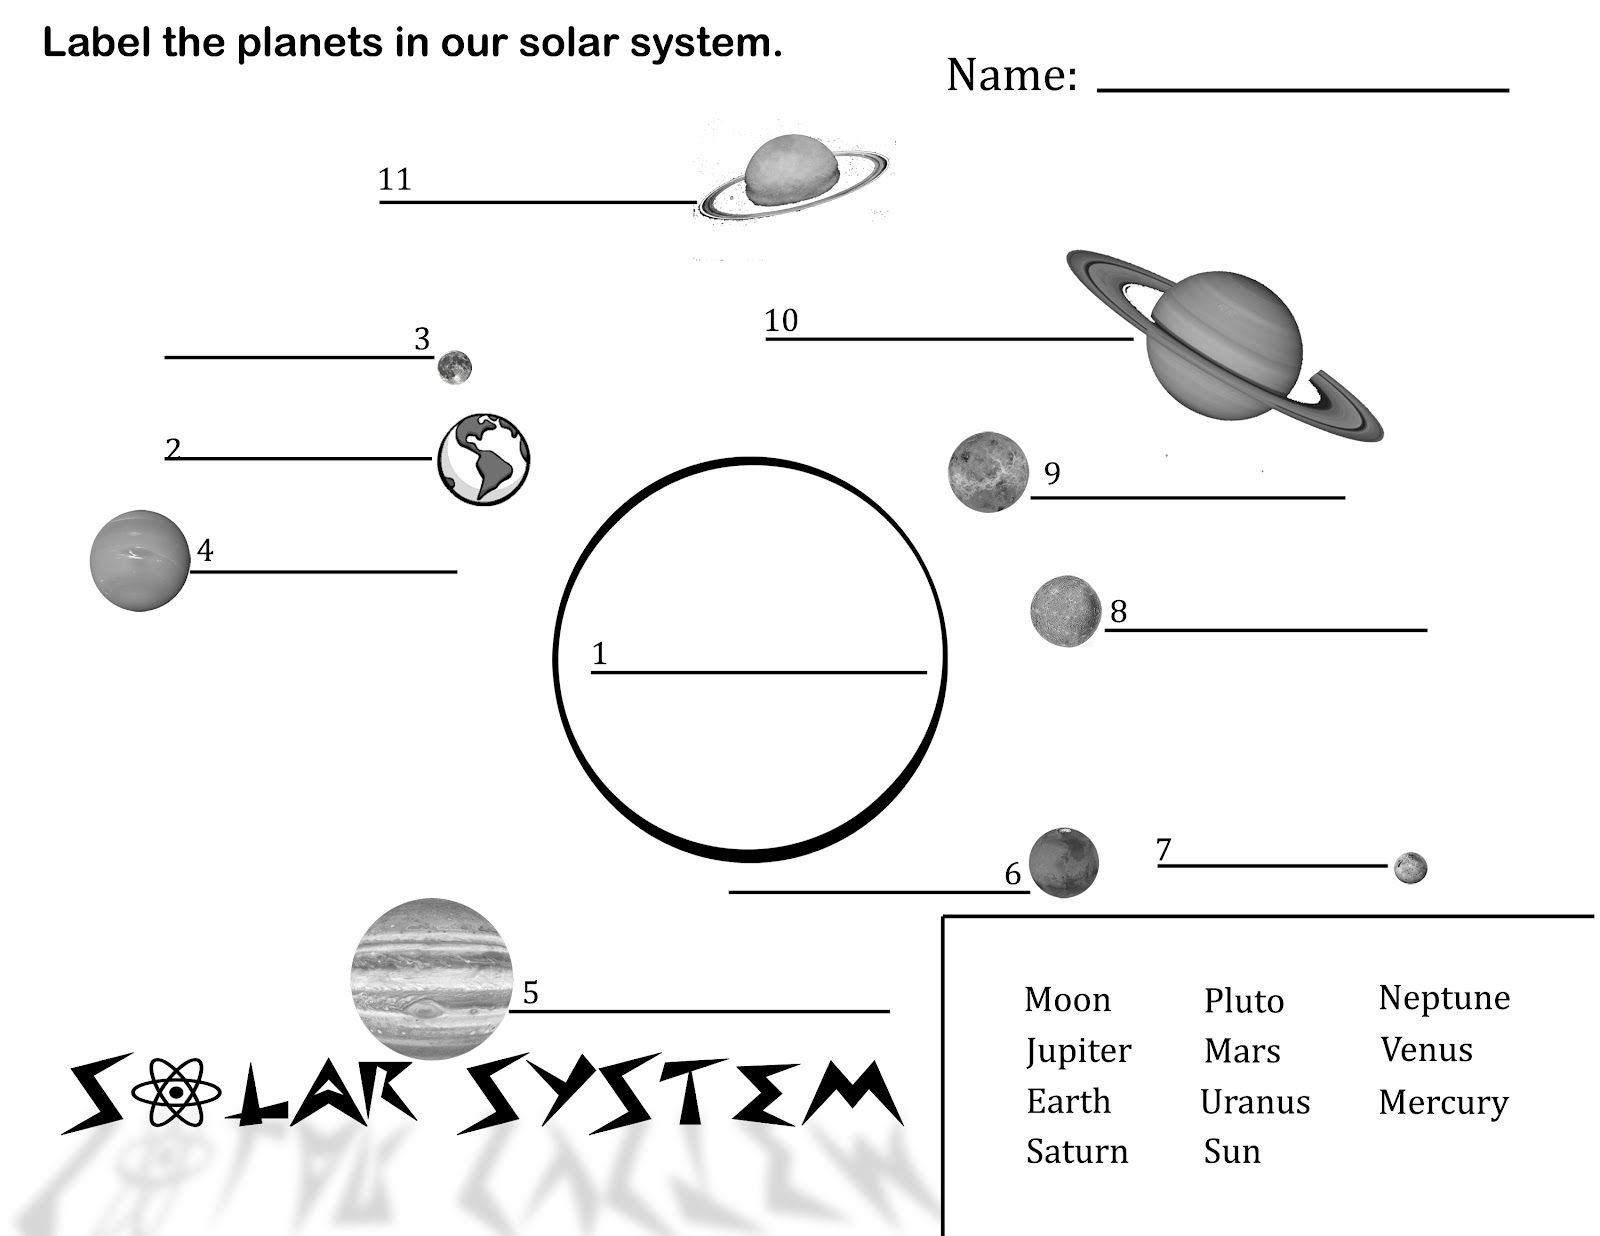 Worksheets Astronomy Worksheets collection of solar system worksheets 3rd grade sharebrowse free printable coloring pages for kids